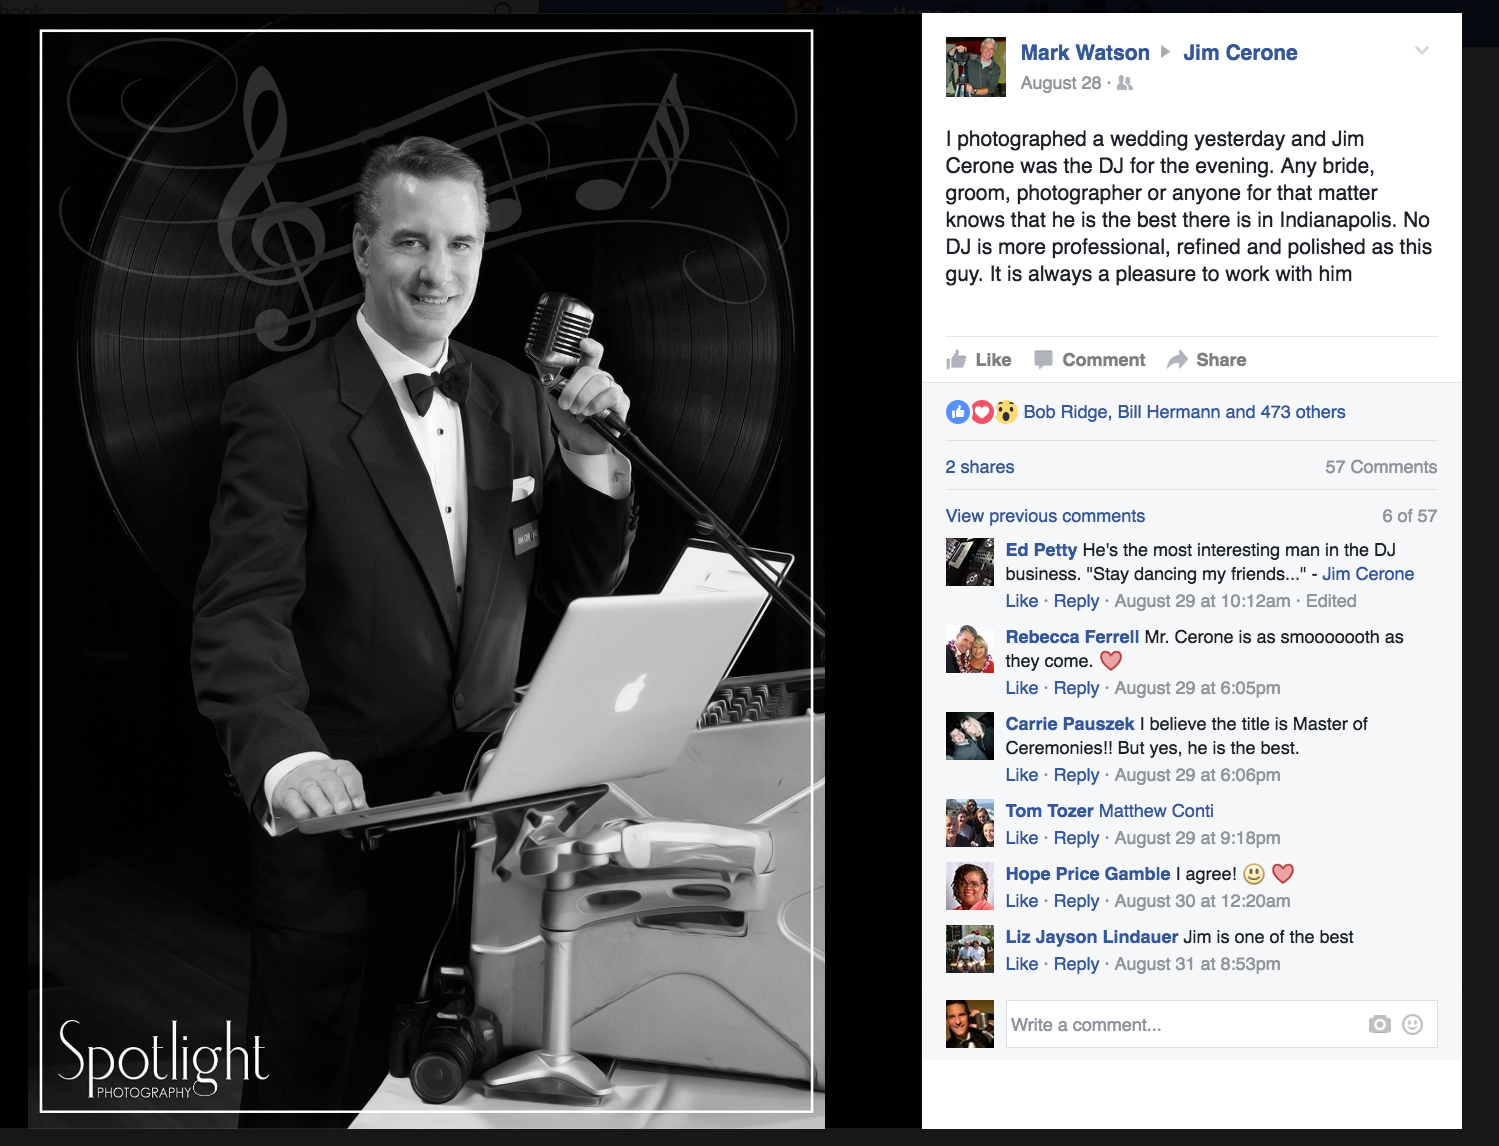 Thank you Mark Watson of  Spotlight Photography  for your photo and very kind Facebook post